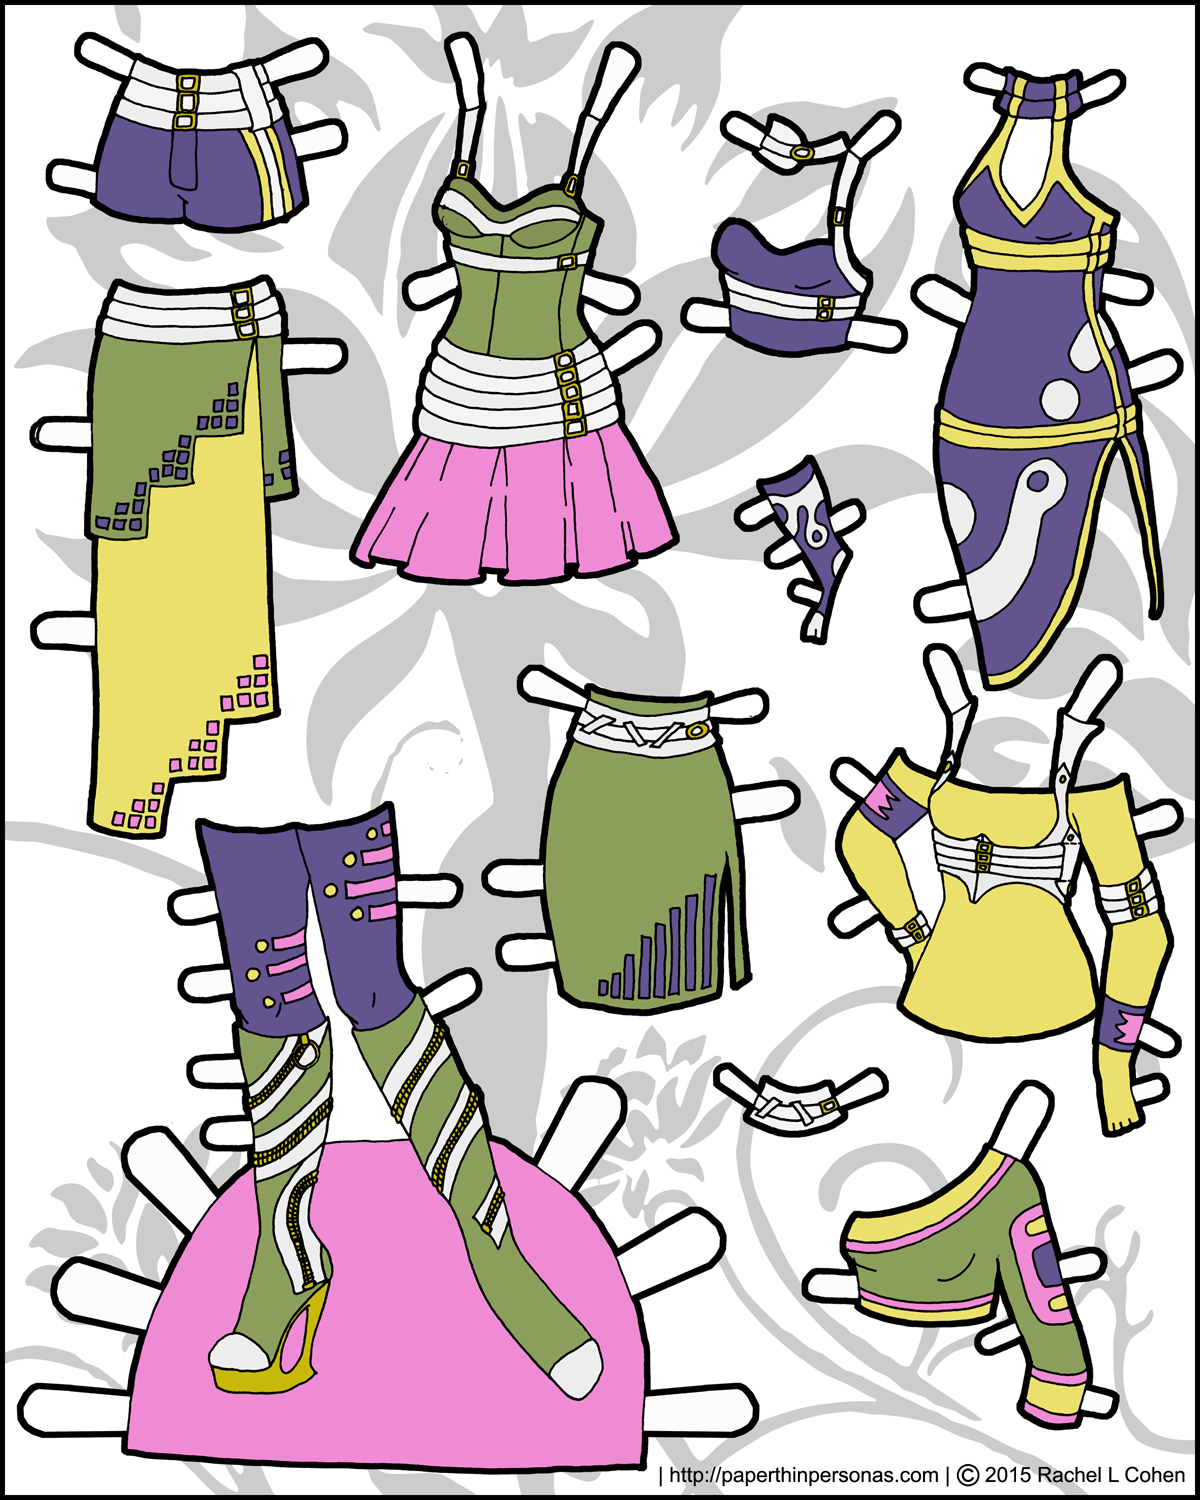 Full color sci-fi fashions for the Ms. Mannequin paper dolls.